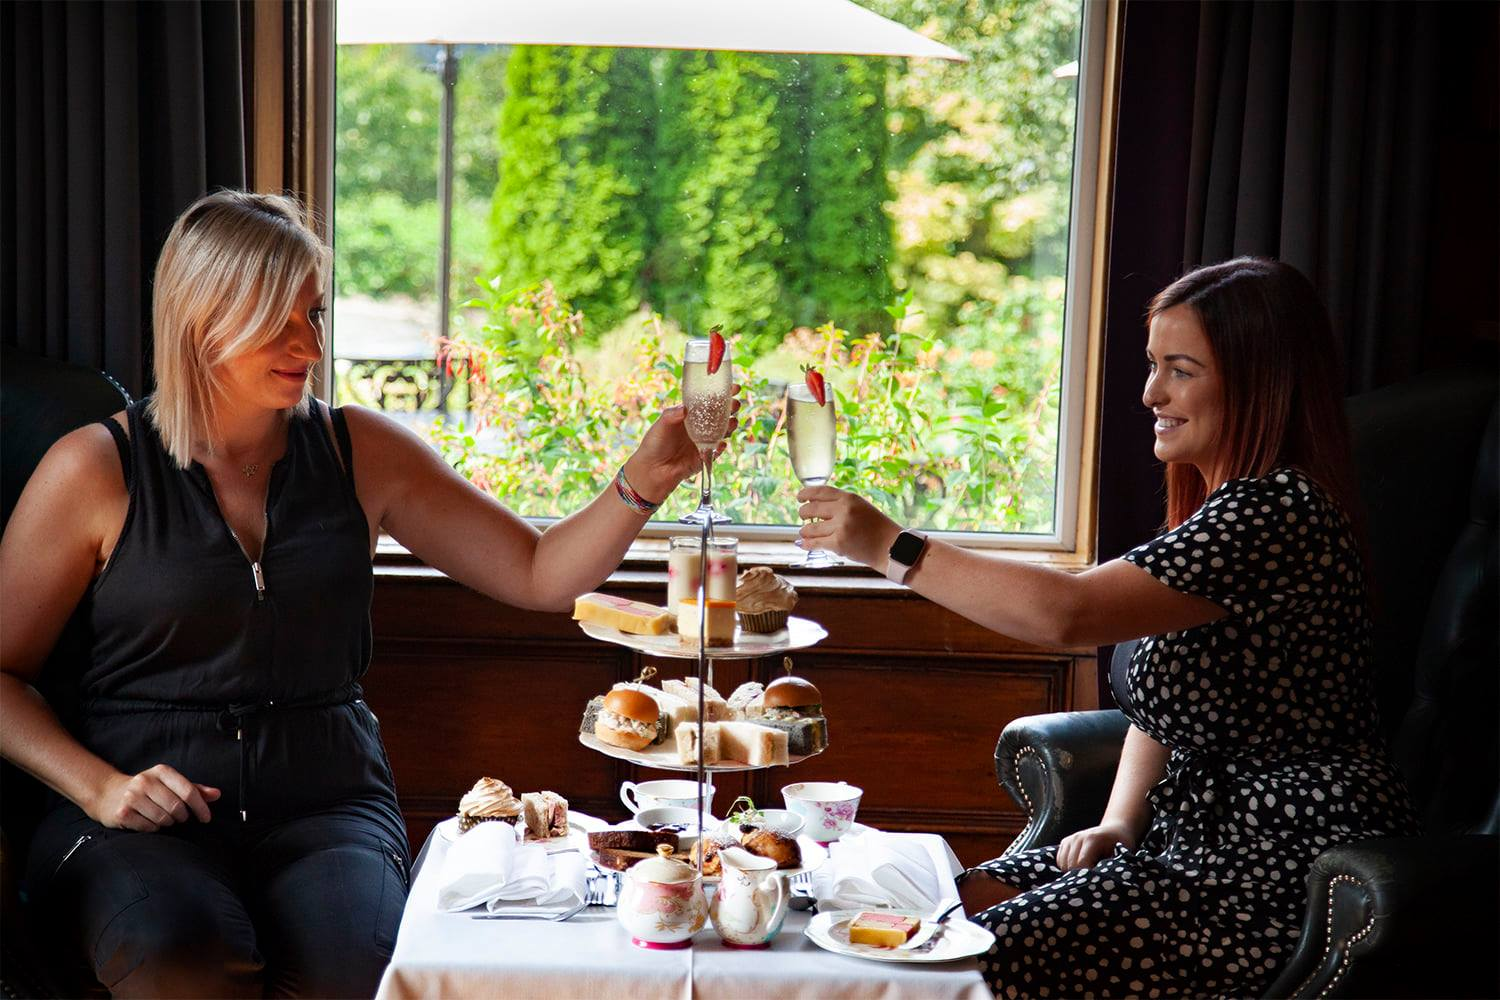 Brandon House Hotel - Afternoon Tea 3 - New Ross, County Wexford - We Love Ireland